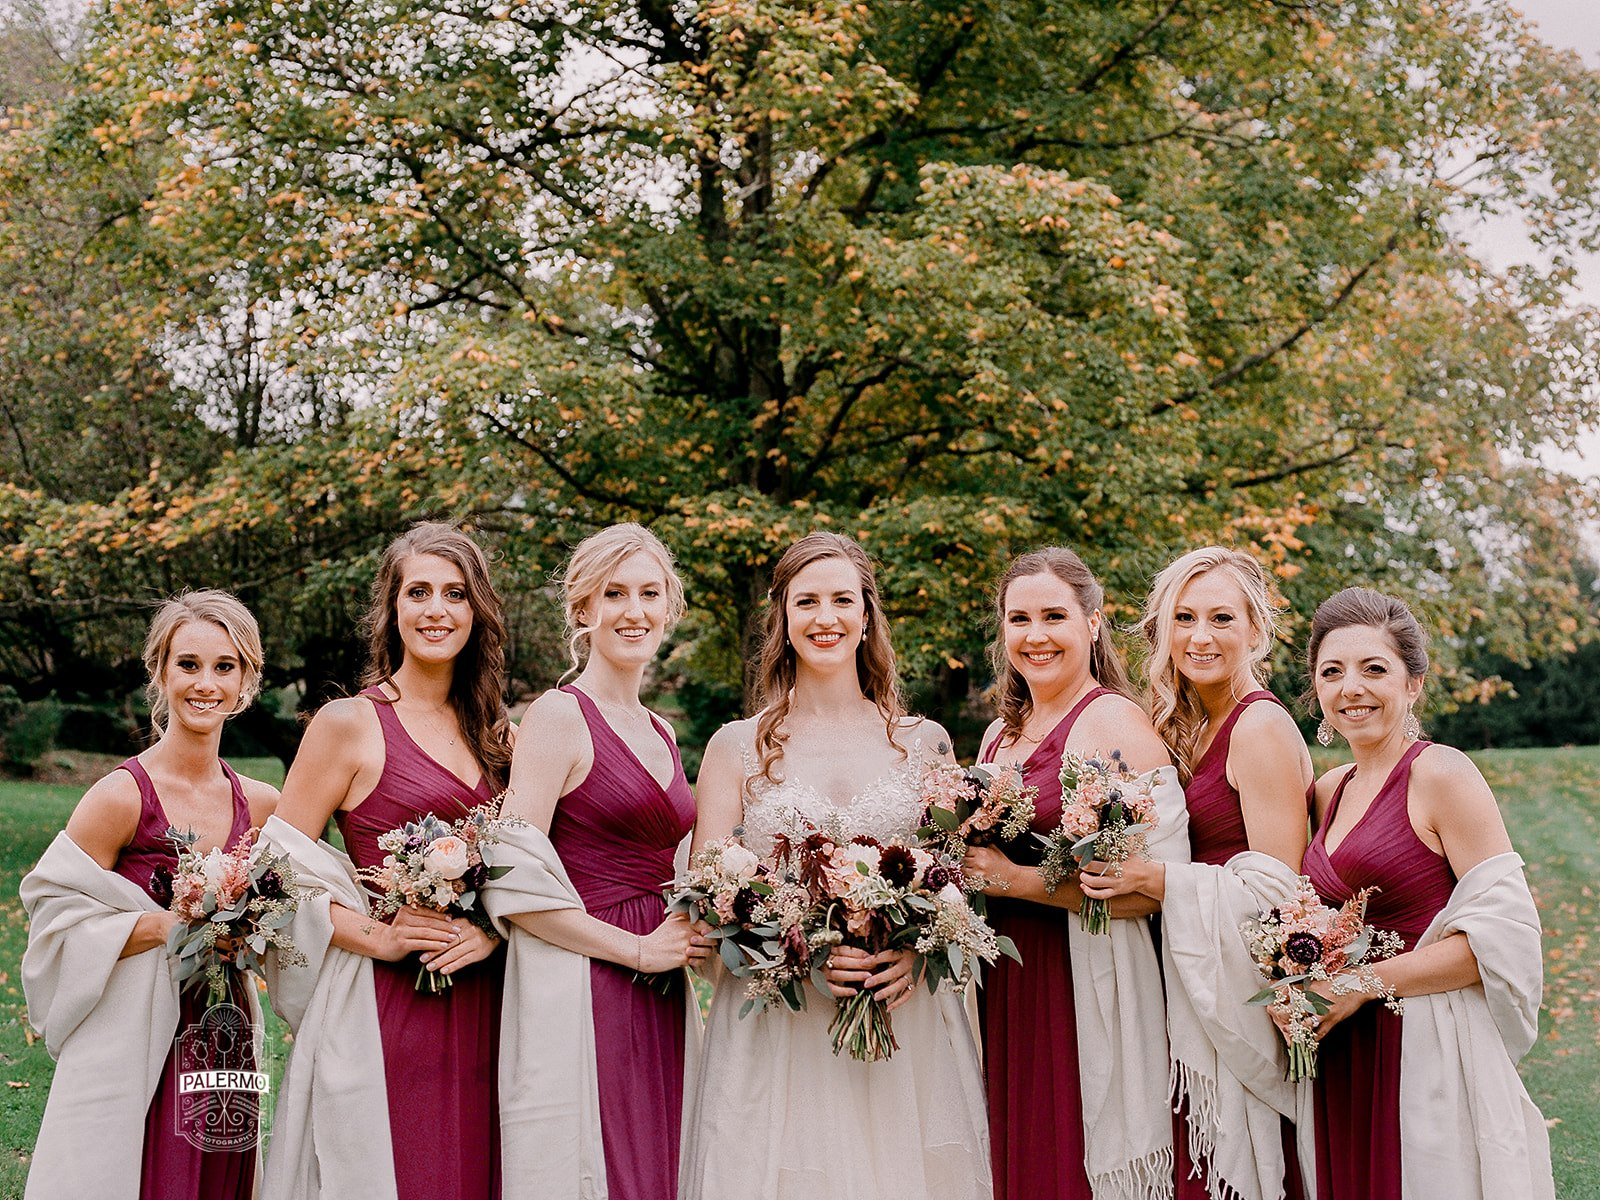 Brides poses with bridesmaids for wedding photos for fall barn wedding in Pittsburgh, PA planned by Exhale Events. Find more wedding inspiration at exhale-events.com!